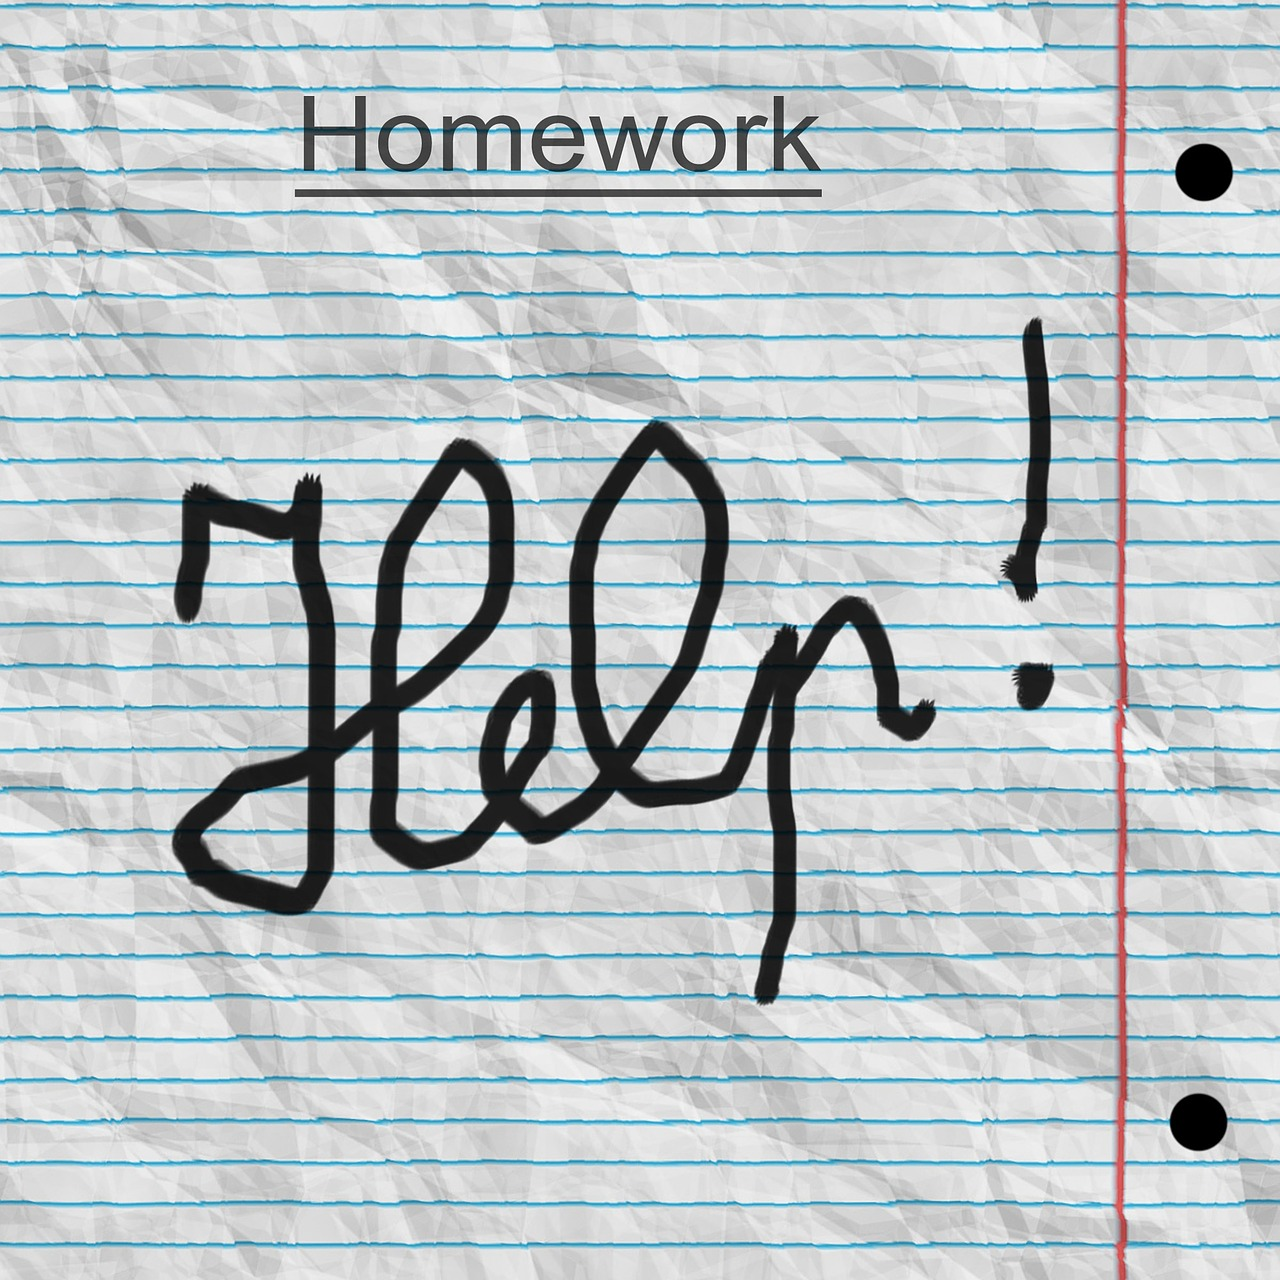 re homework help Re homework help - writing an essay can be hard, doing it right may be worst get help on your college essay from a published author pay per page for only what you need.